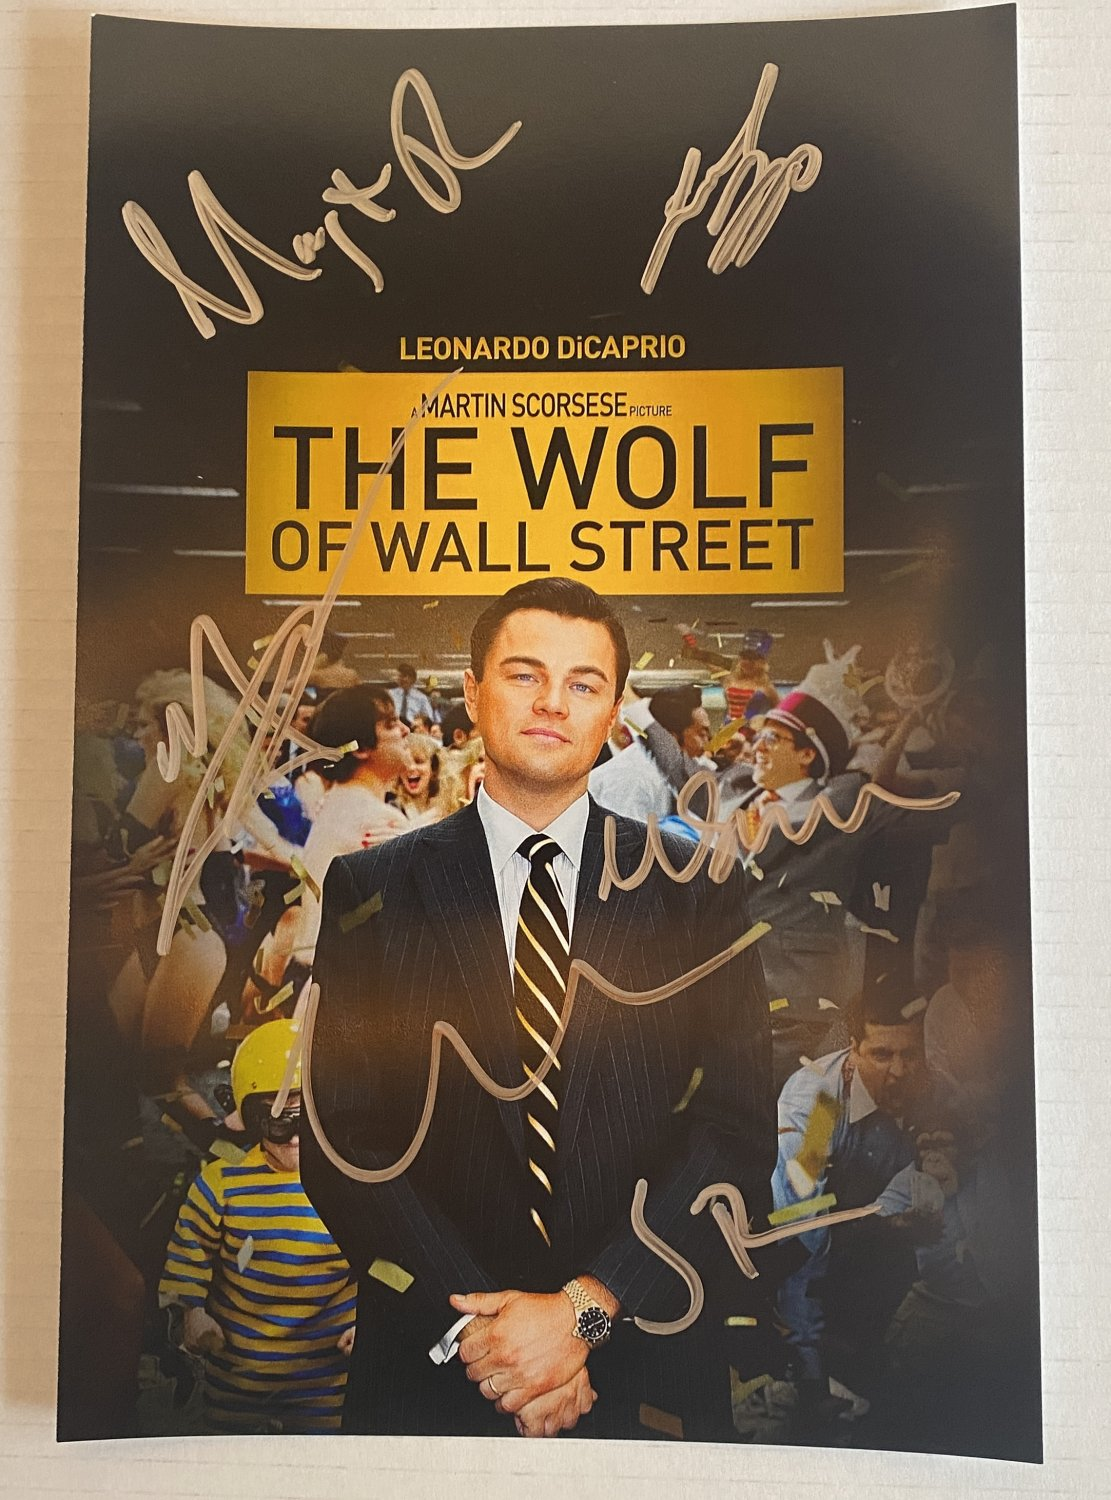 The Wolf of Wall Street cast signed autographed 8x12 photo Leonardo DiCaprio photograph